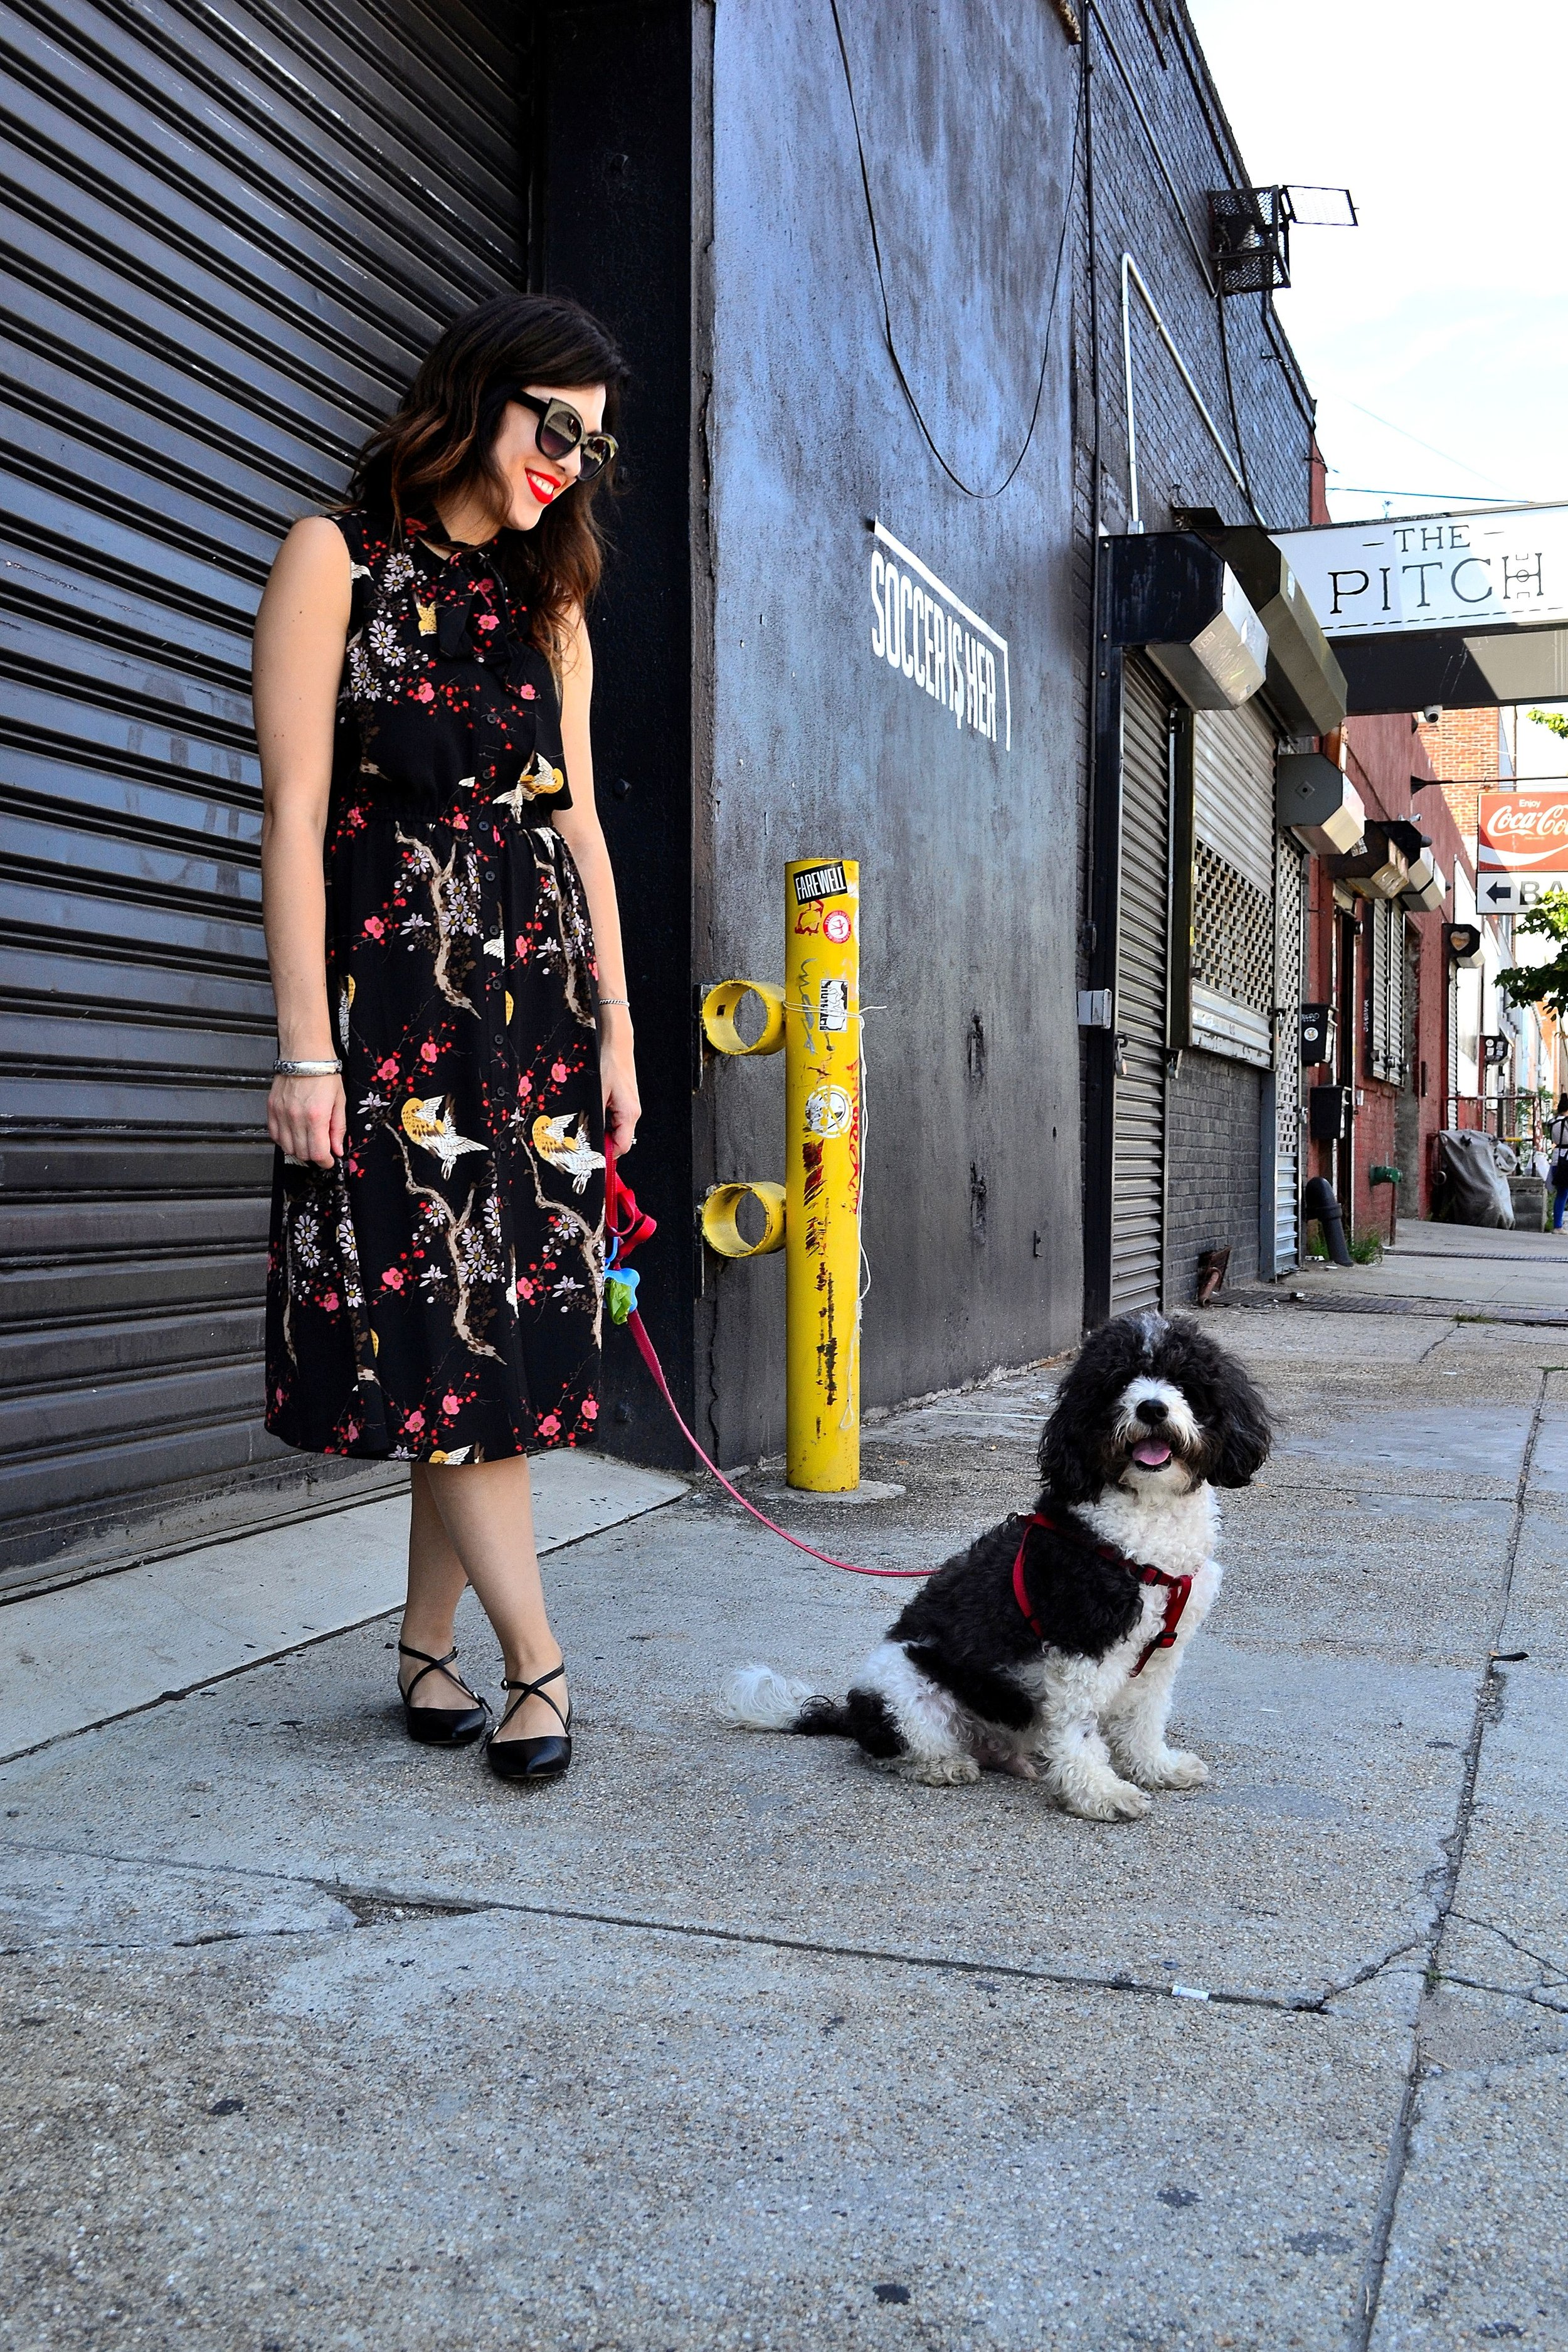 dress- Highline Collective /  flats- Nine West /  sunglasses- Urban Outfitters / bangle- gift/  red lipstick- Sephora Cream Lip Stain in Always Red